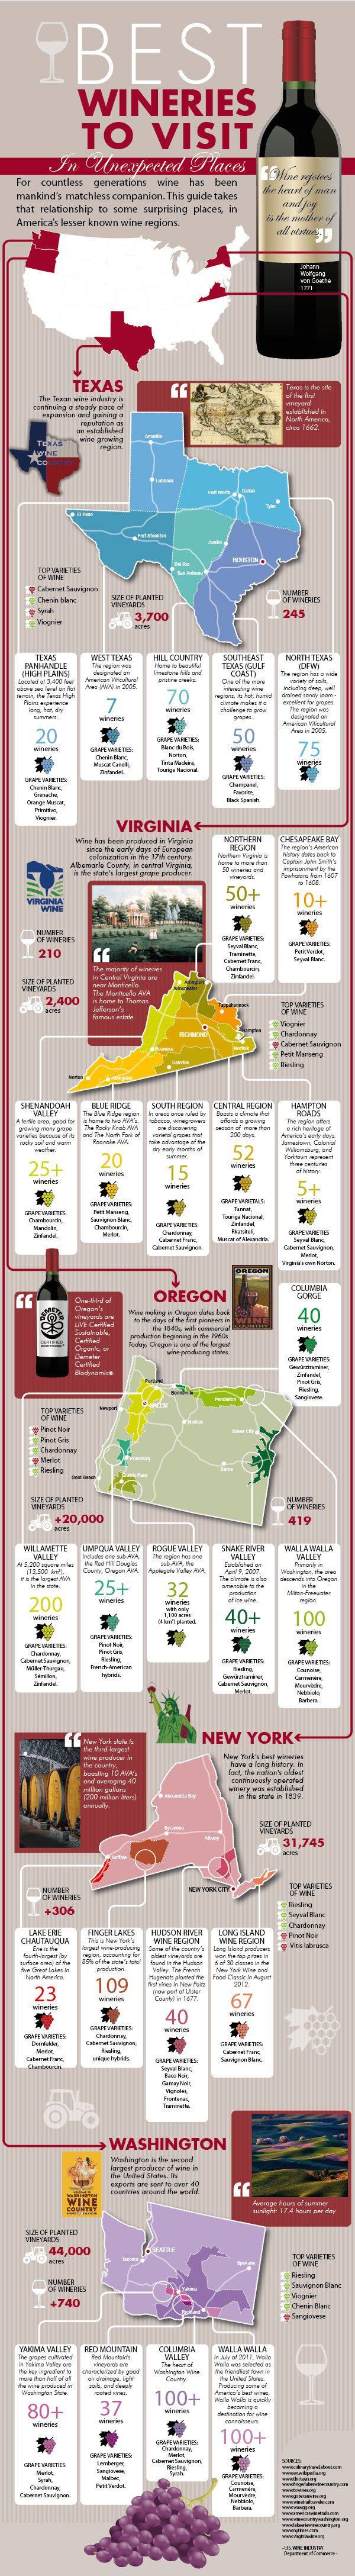 The Best (Unexpected) Wineries in the US - Texas, Virginia, Oregon, New York and Washington wine country.  Good to know!